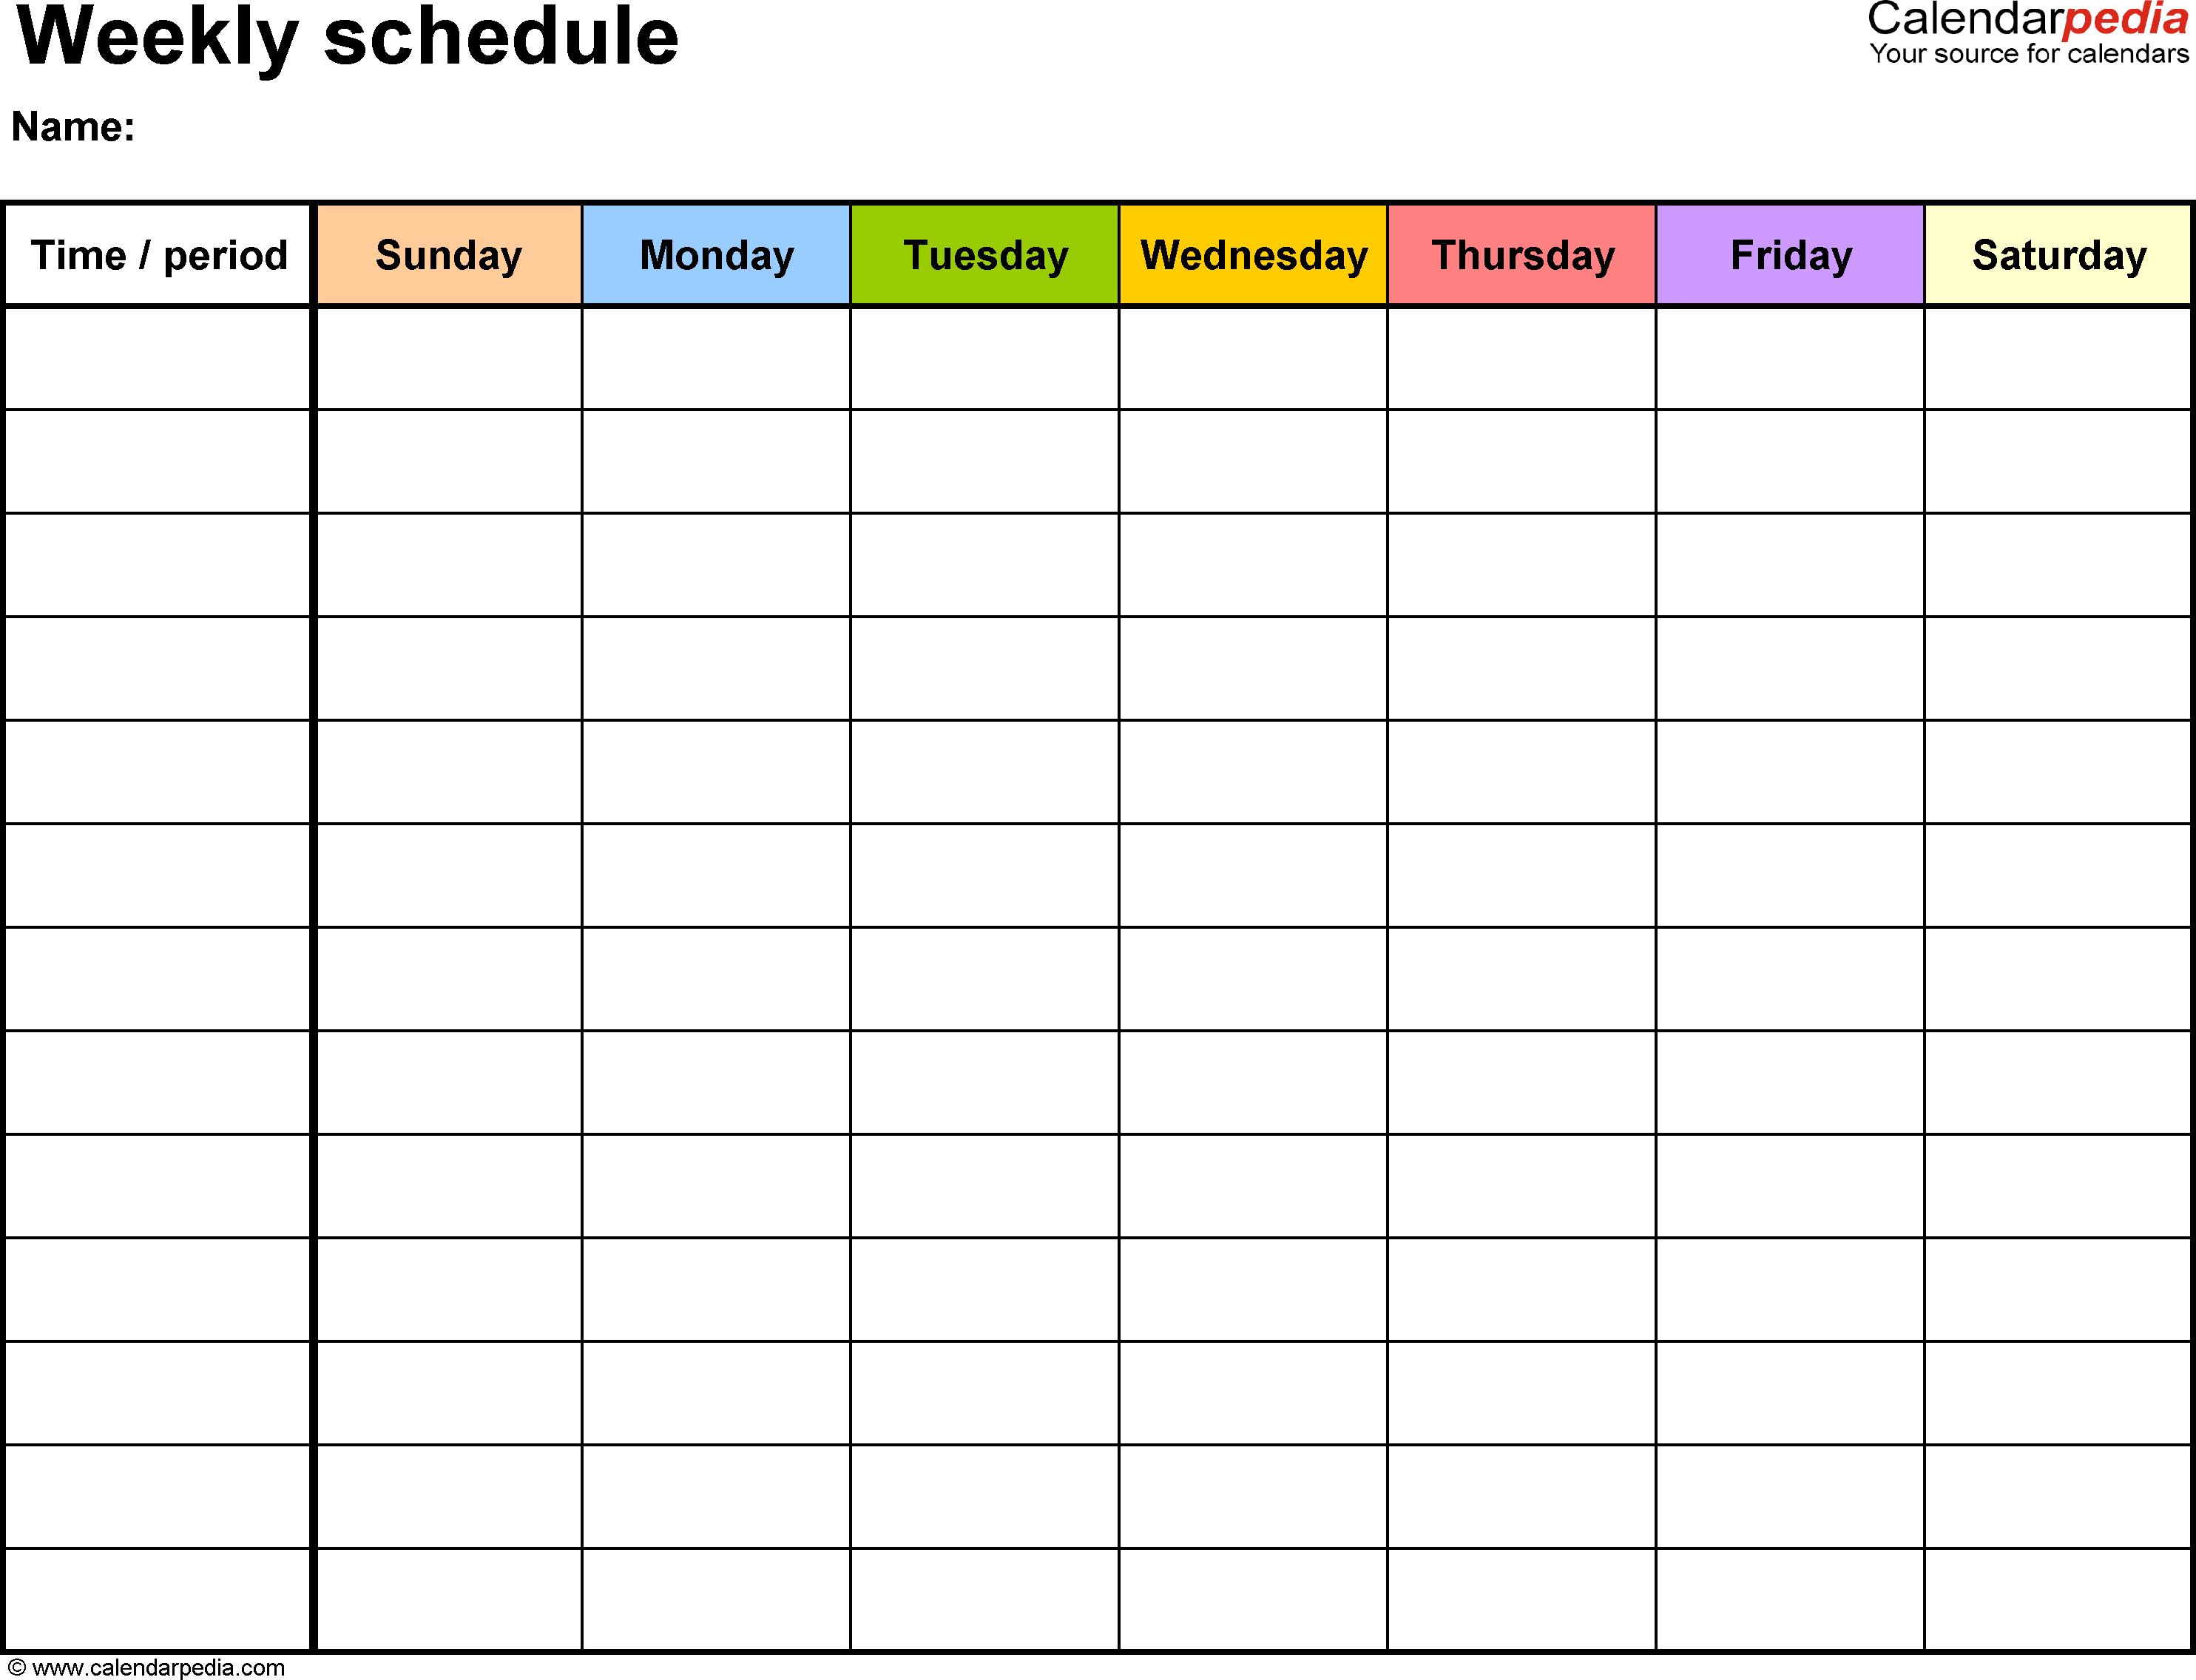 Weekly Schedule Template For Word Version 13: Landscape, 1 with Sunday Through Saturday Schedule Template